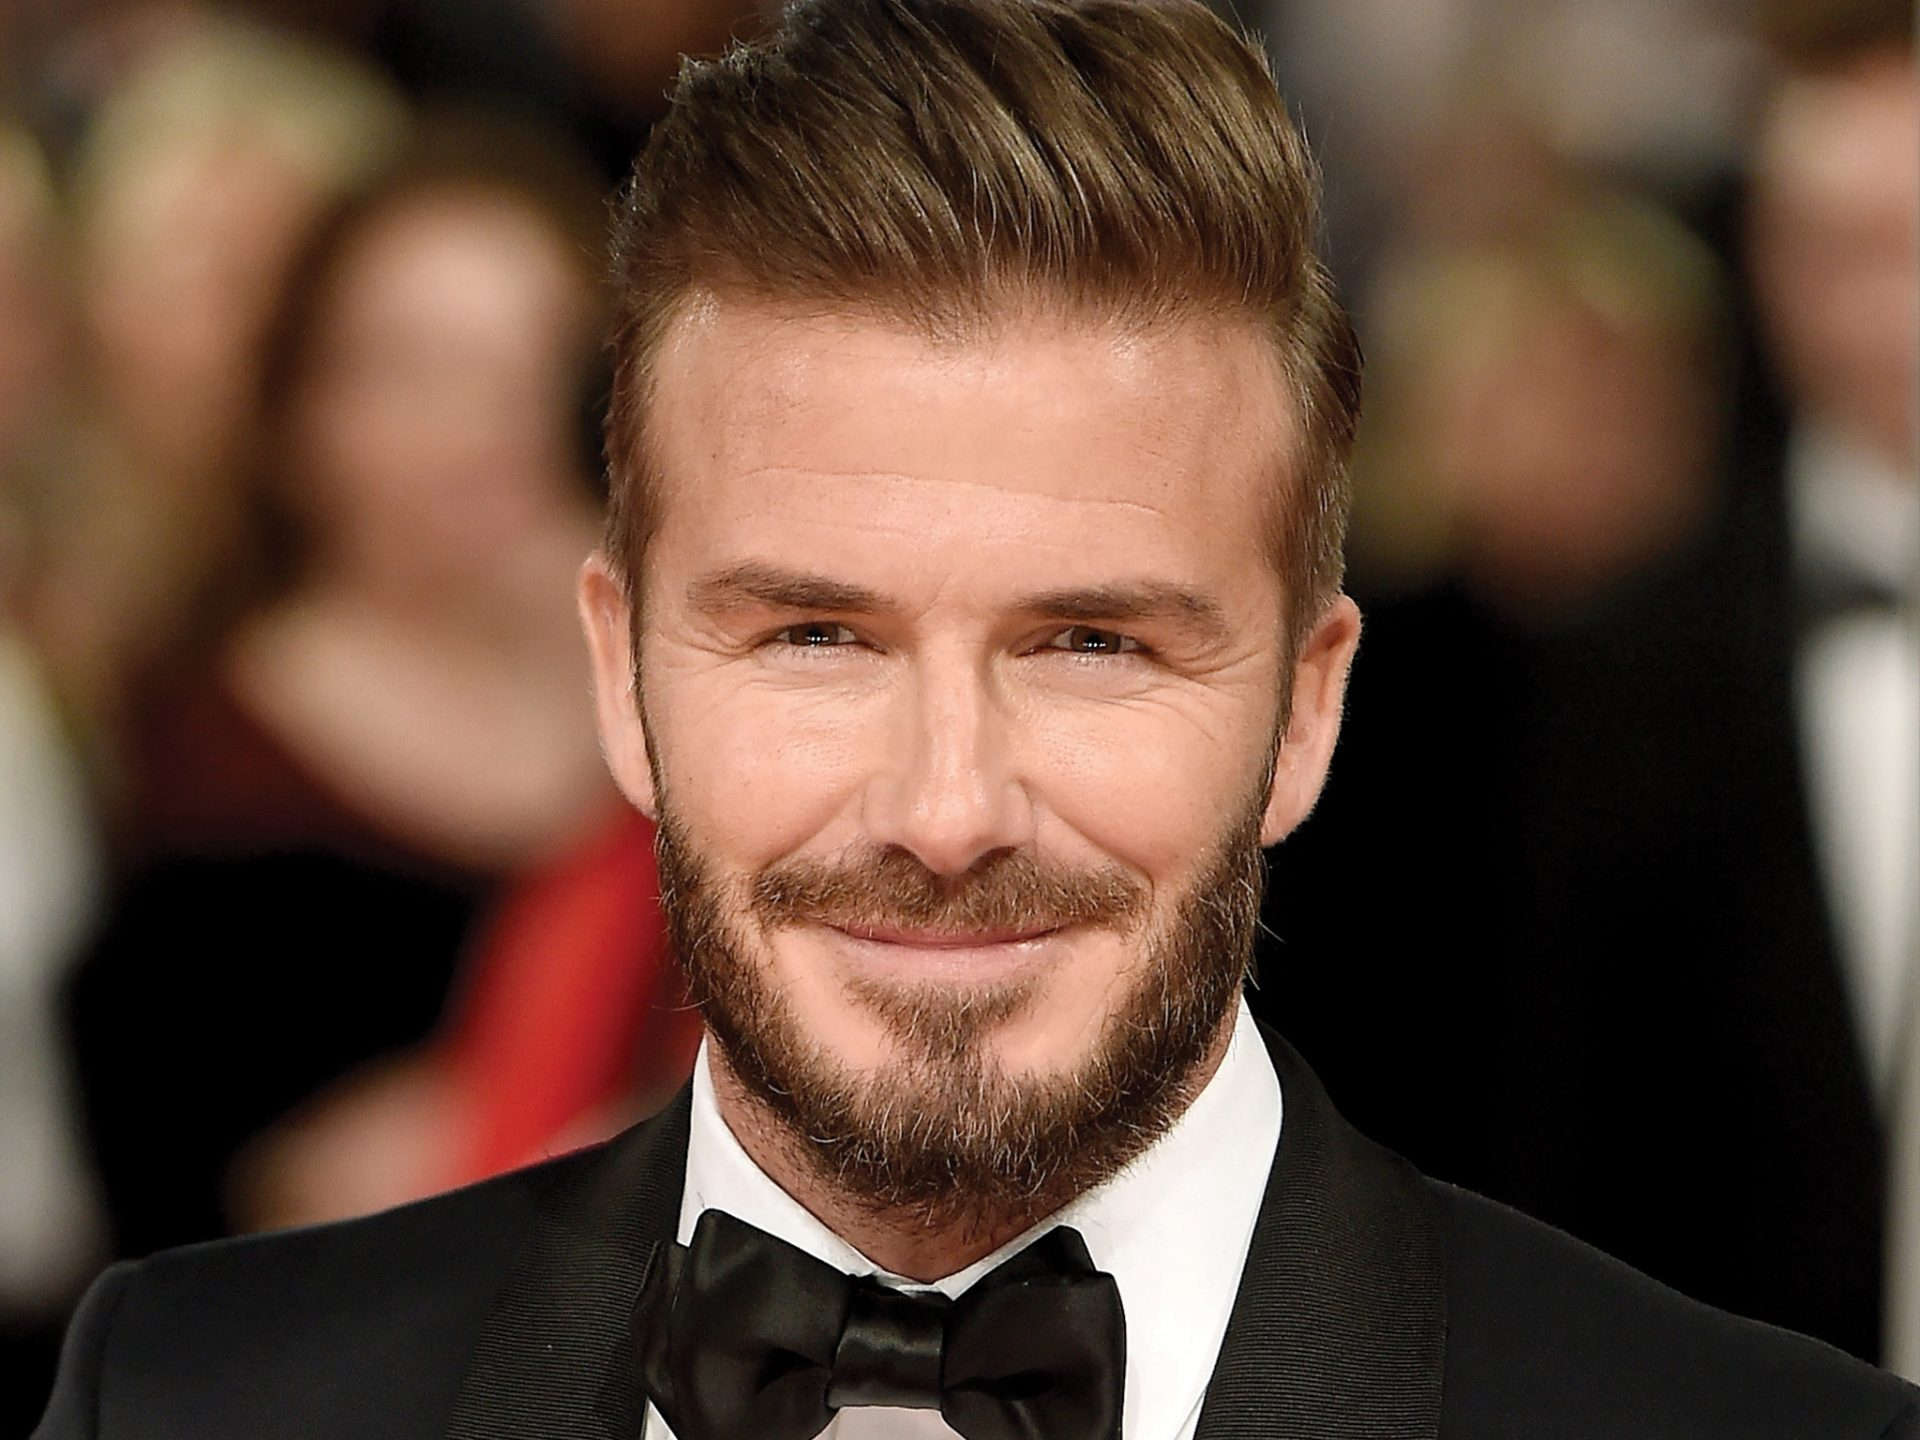 david-beckham-family-photos-wife-son-daughter-age-height-weight